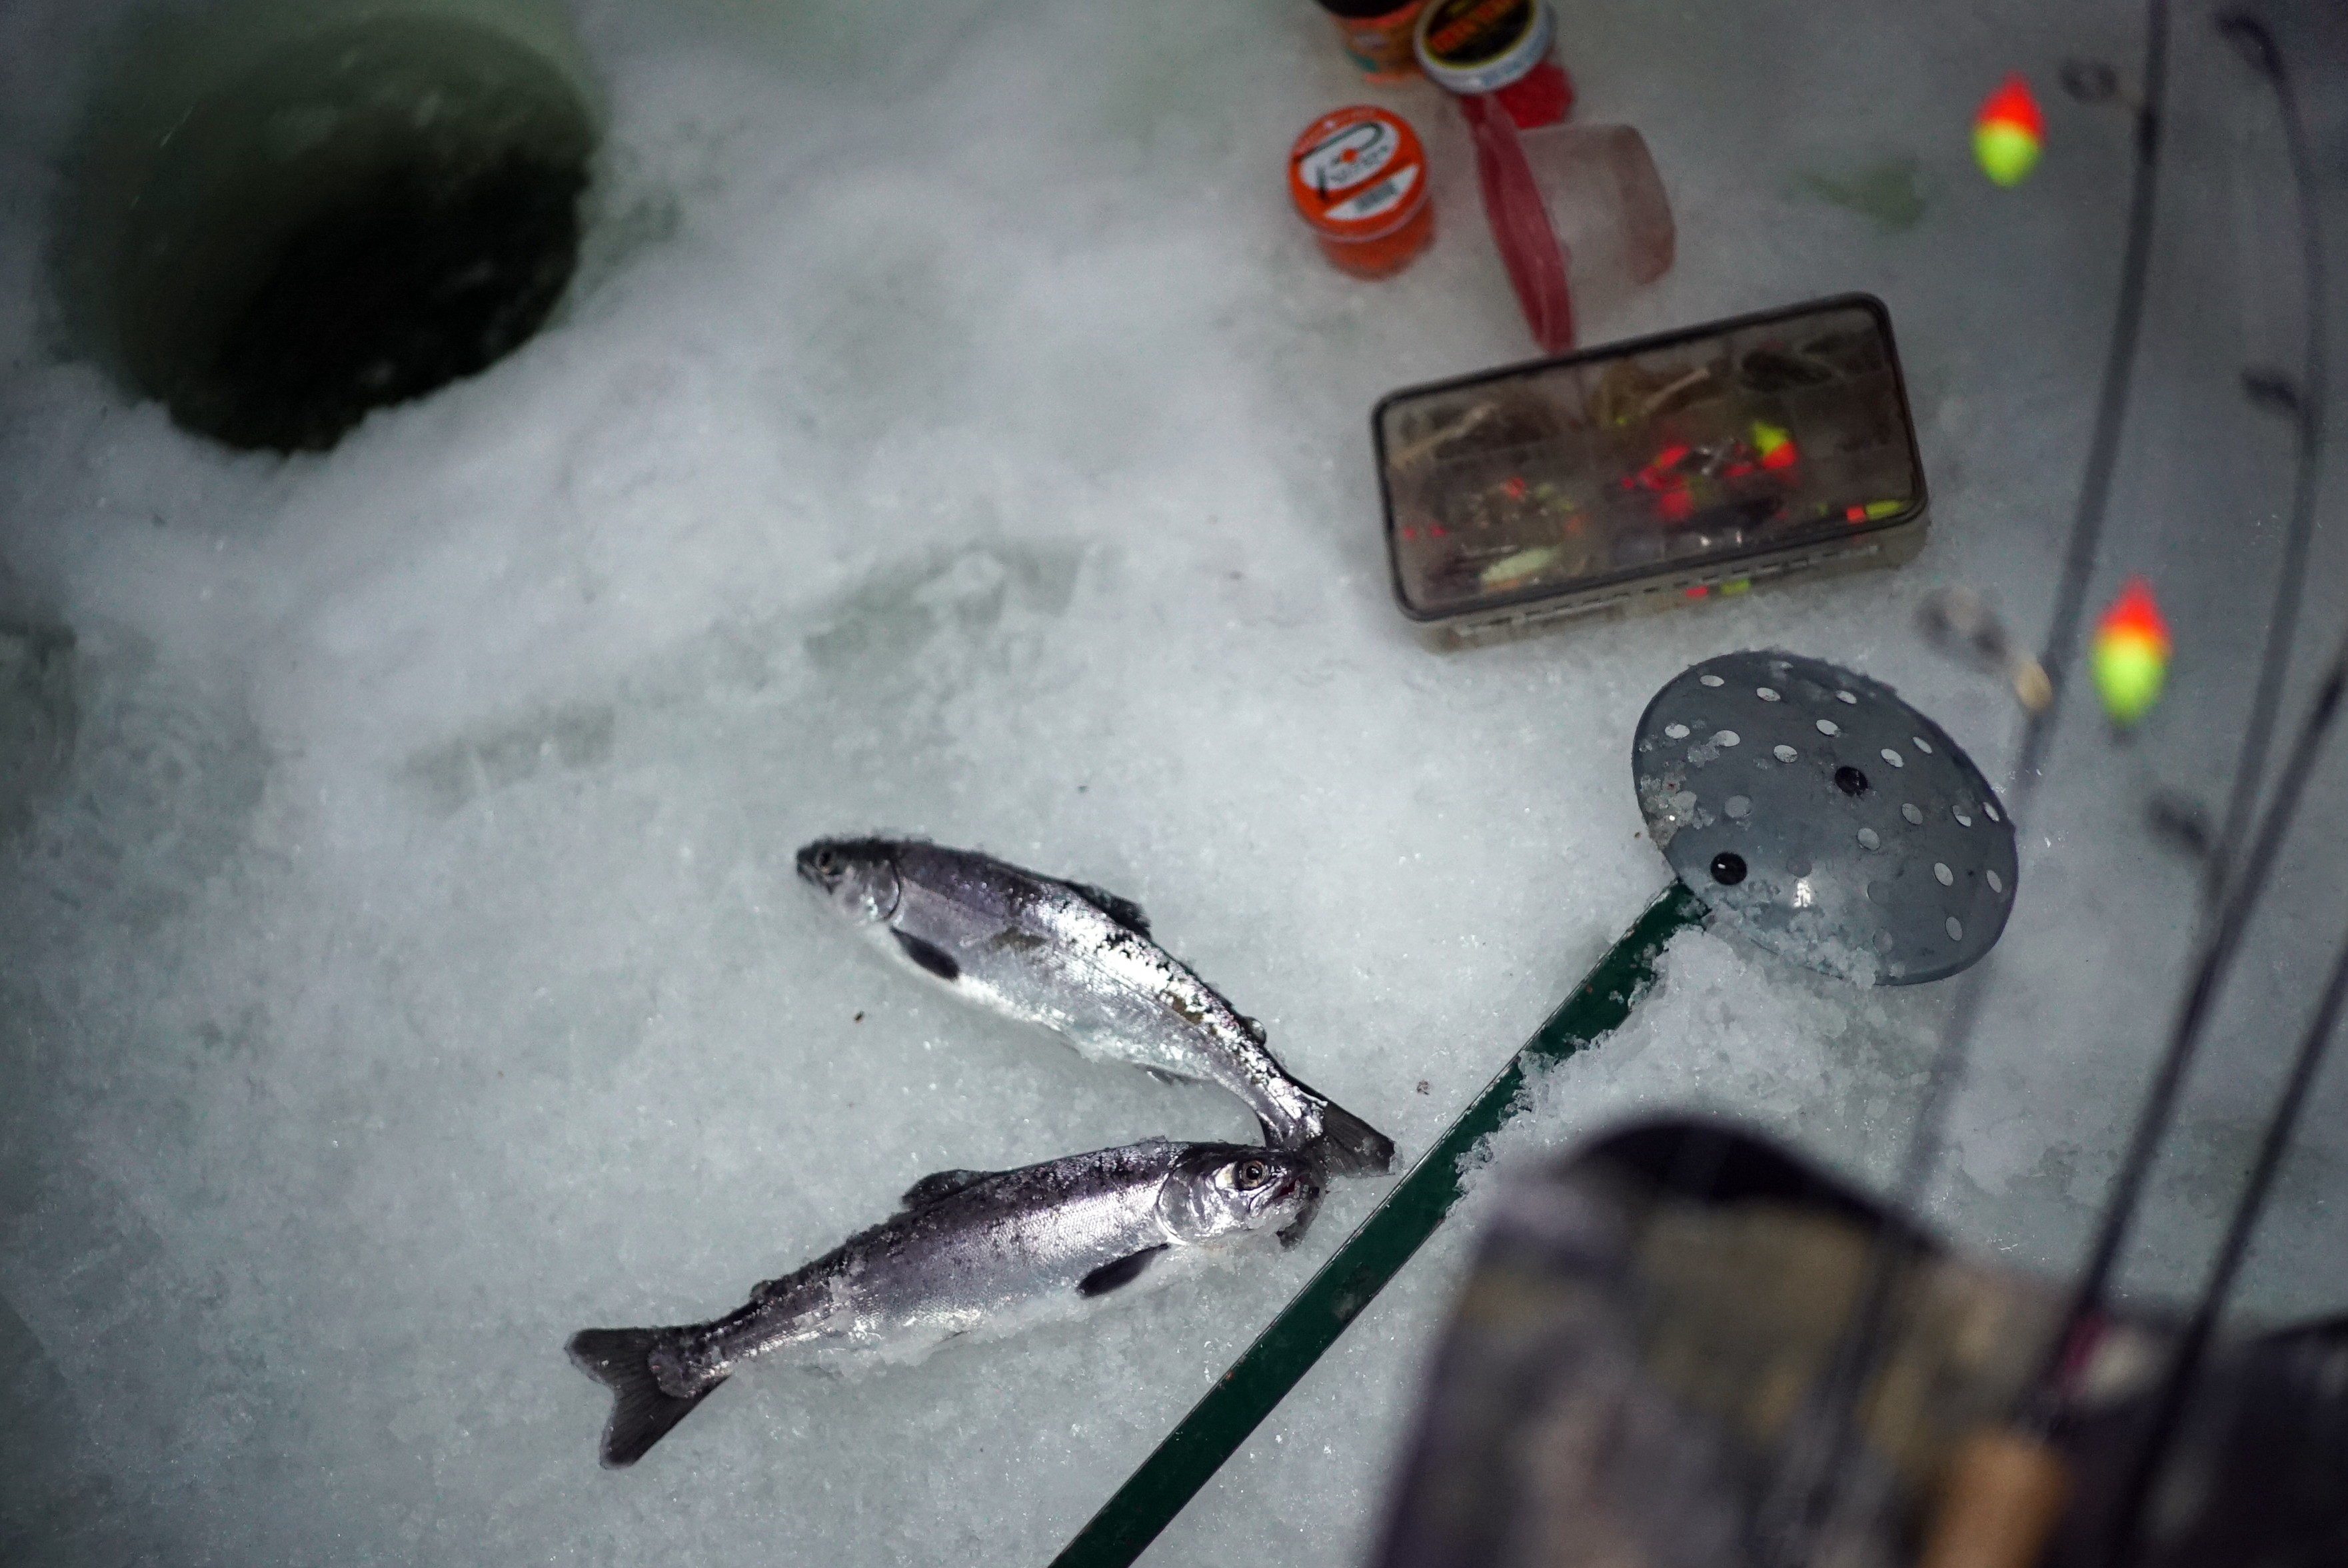 ice fishing gear next to a hole with 2 fish